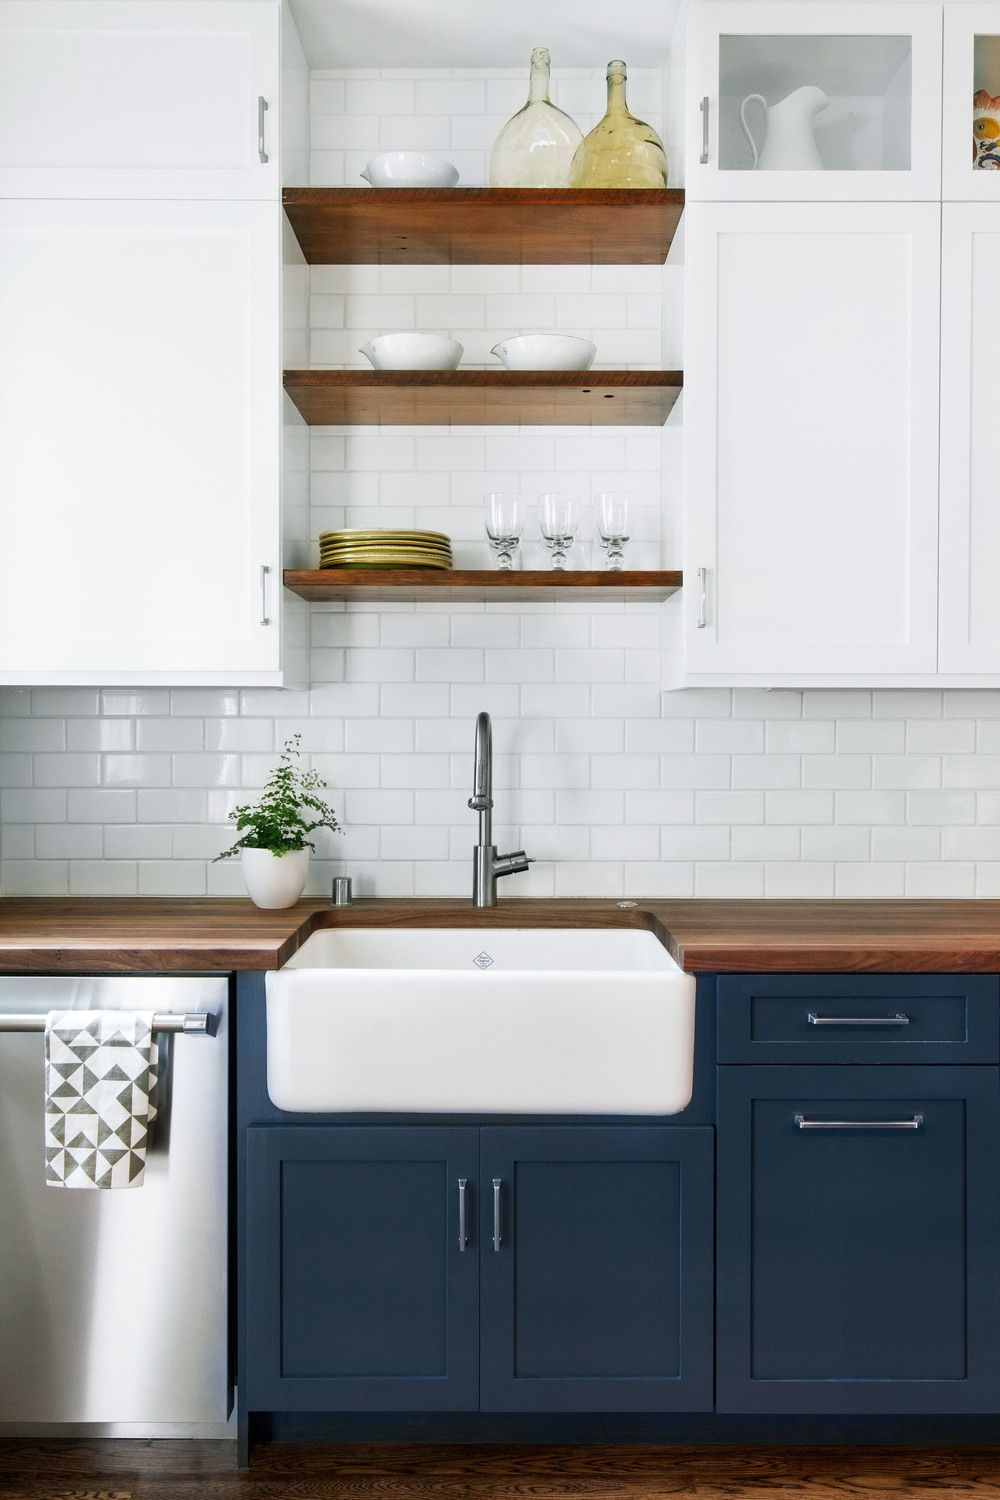 dark base cabinets, white top cabinets. open wood shelves and big